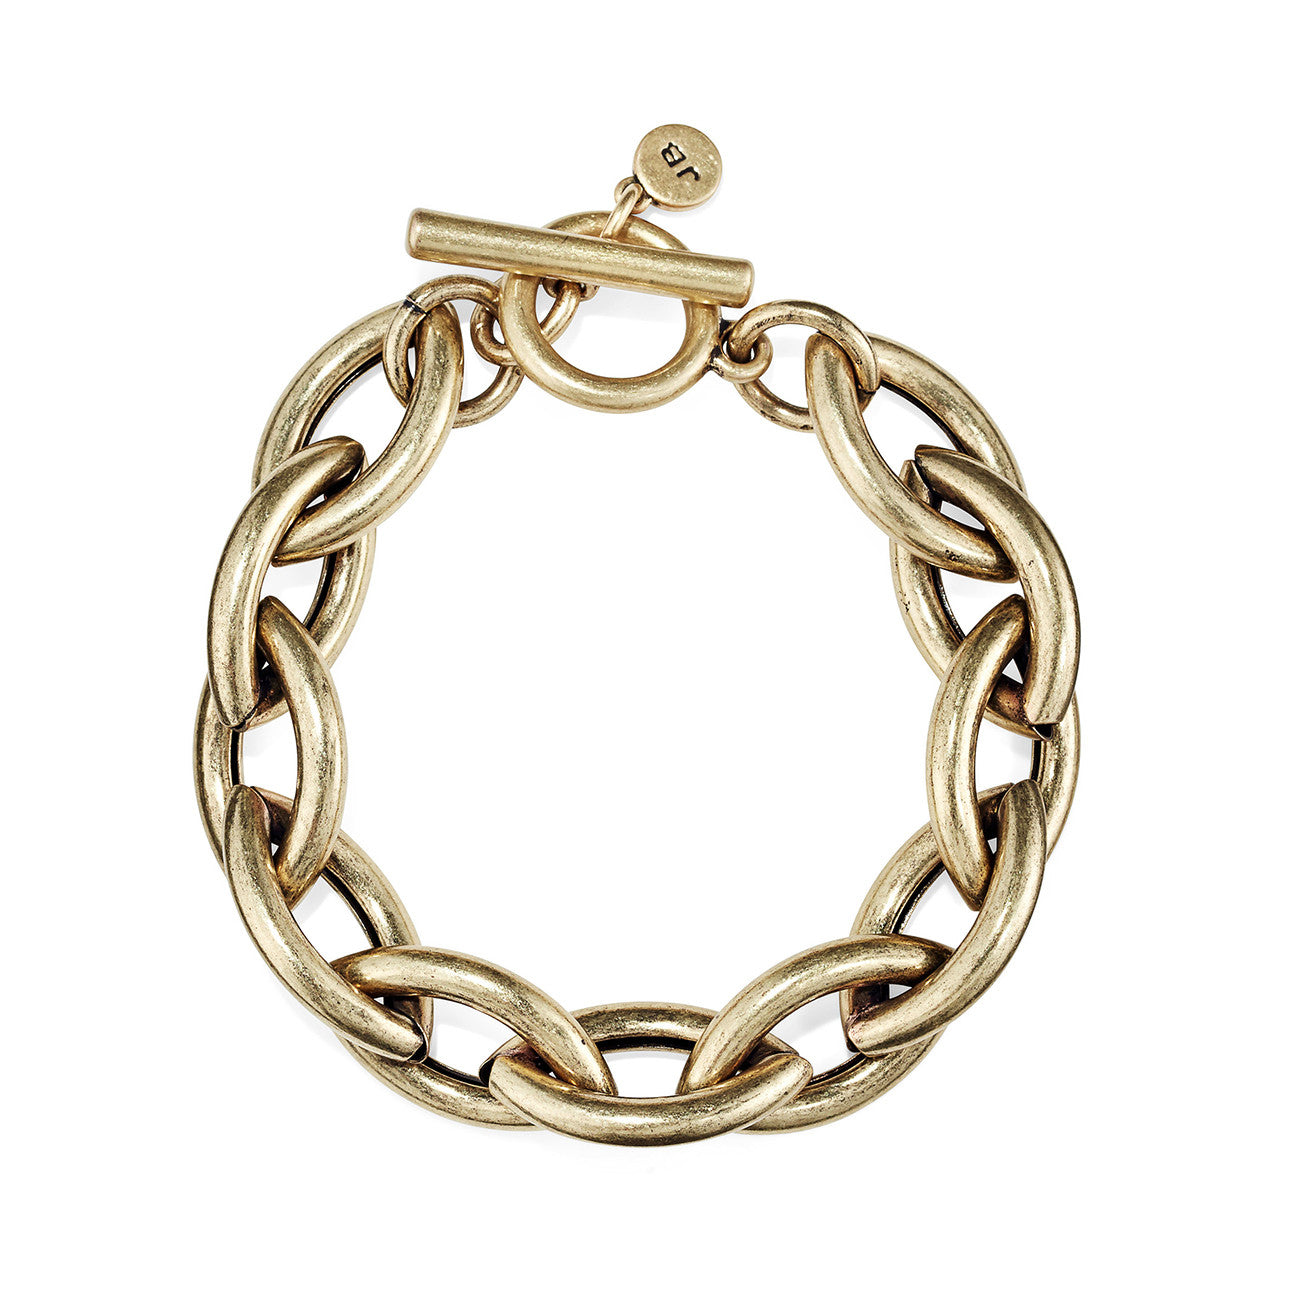 Small Sloane Bracelet by Jenny Bird in Oxidized Gold